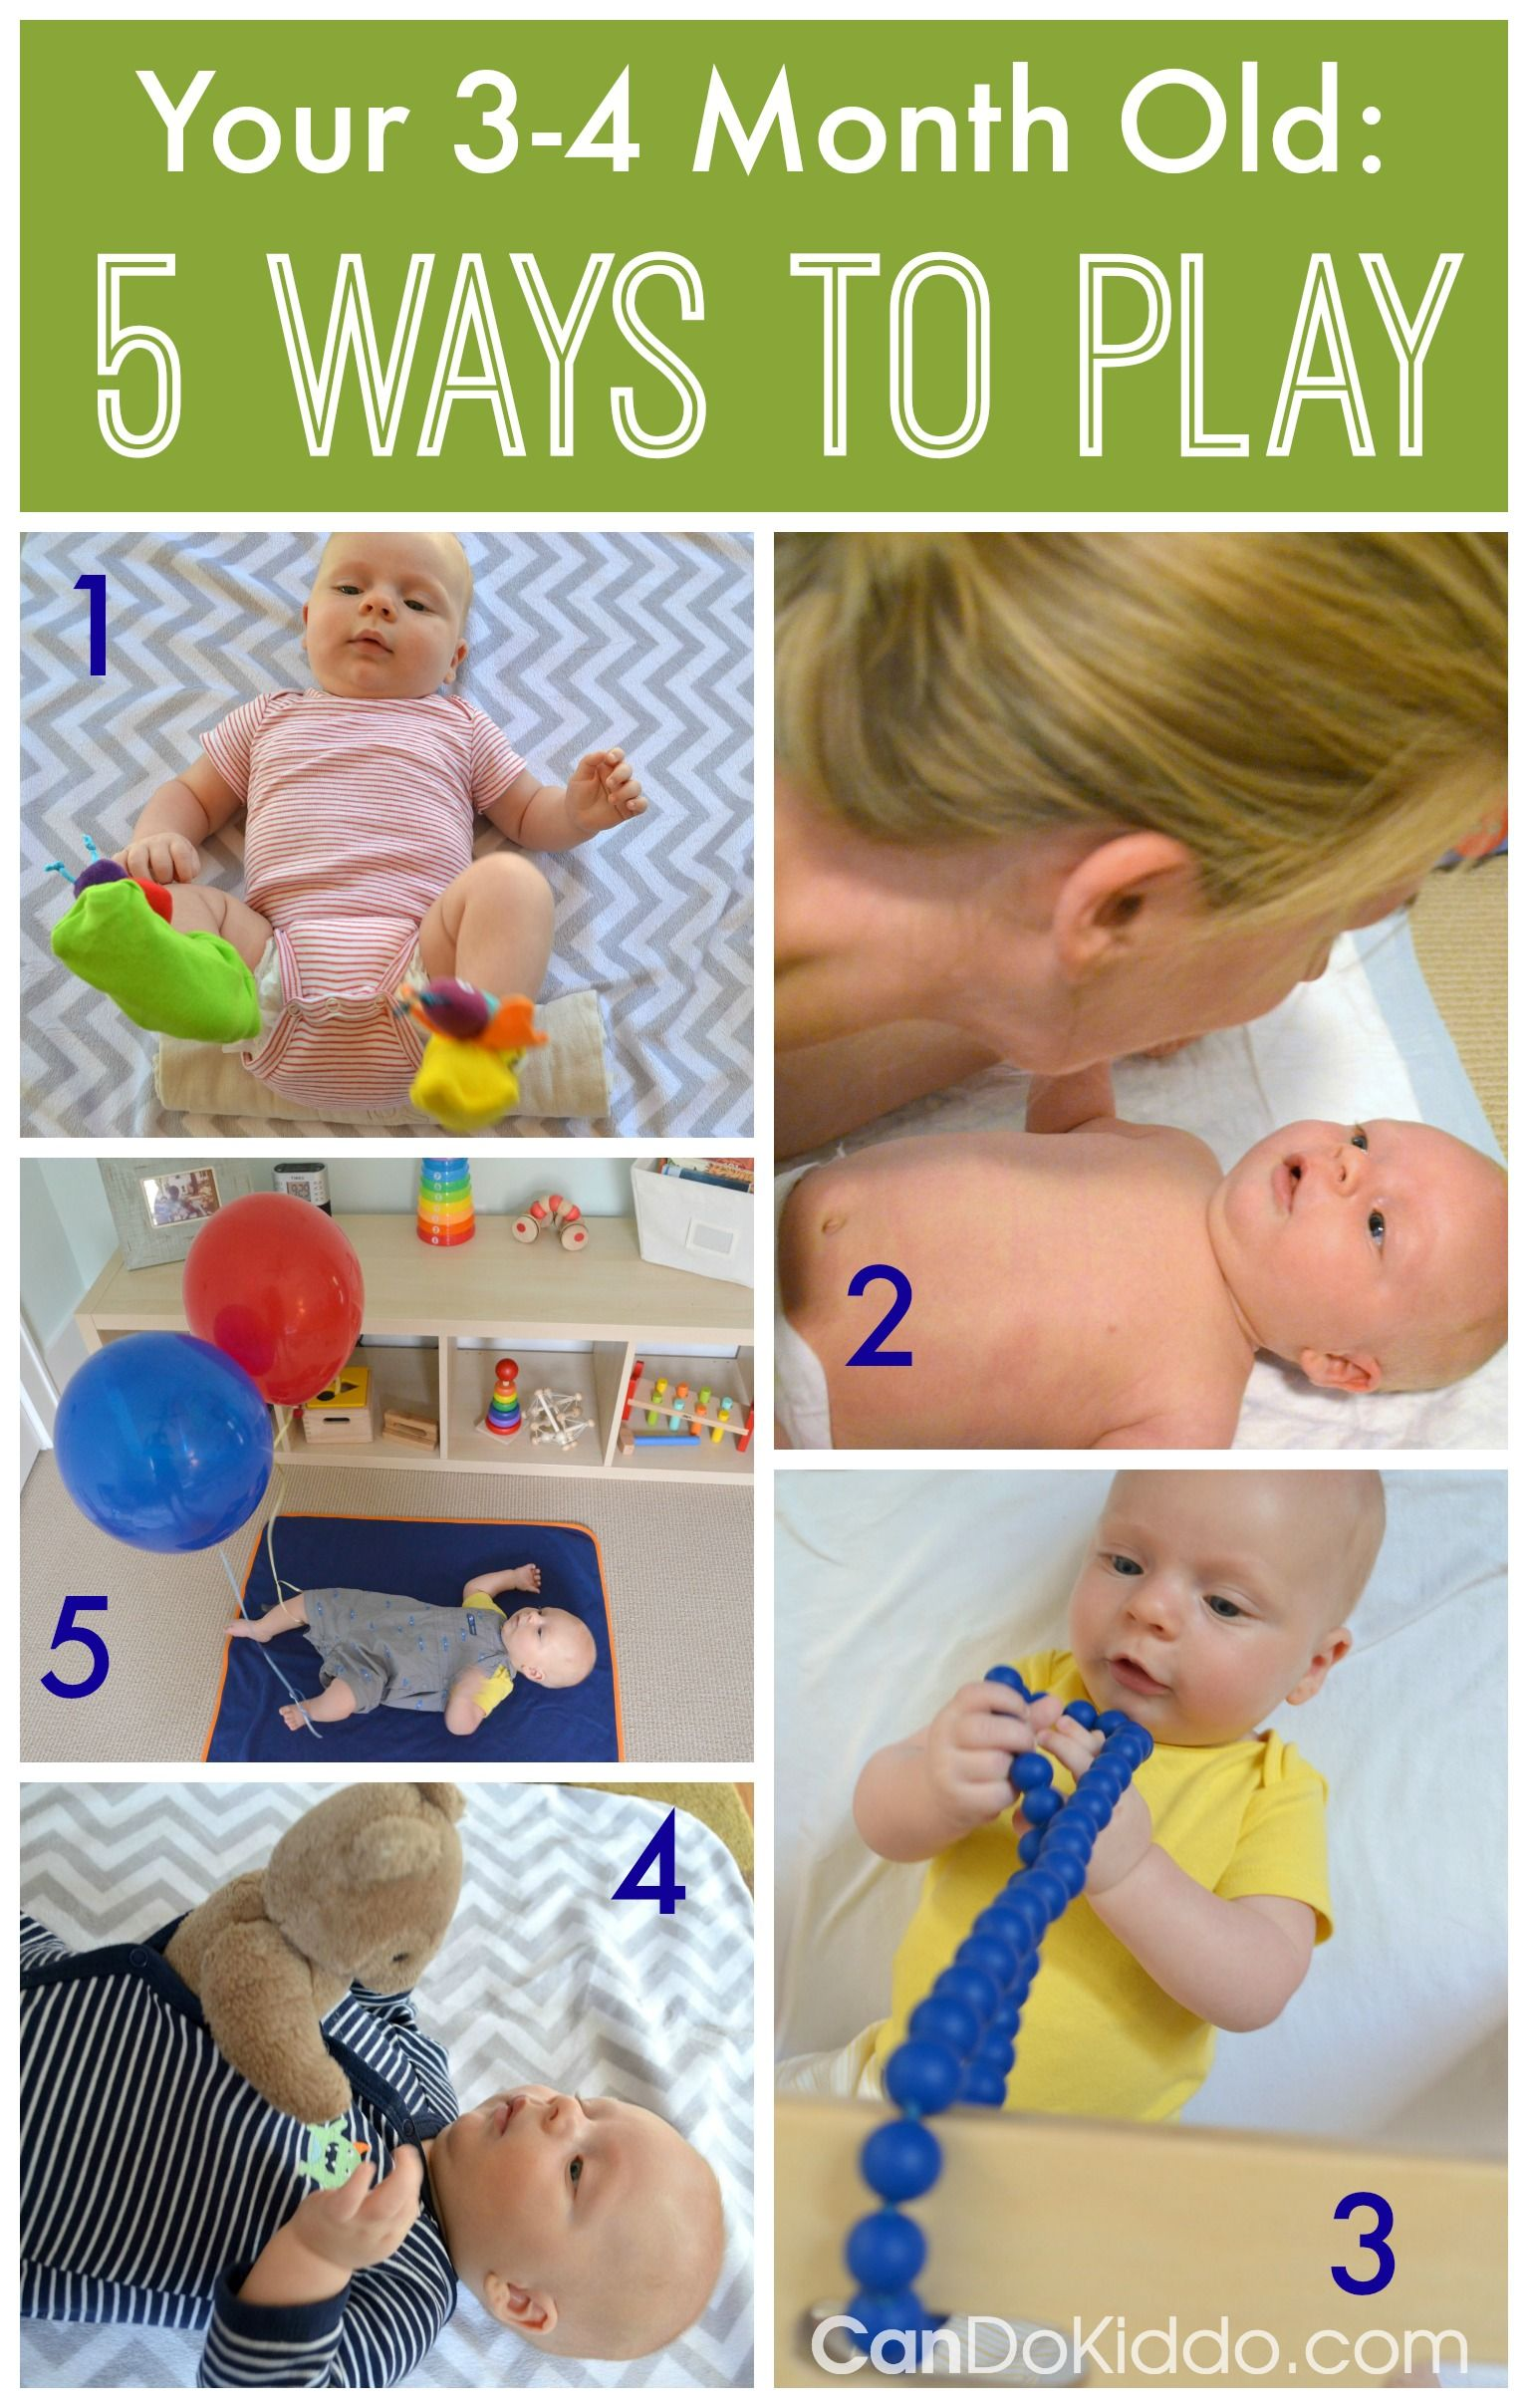 Cheery 3 Month Nz Toys Toys Month S 3 Month Australia Understanding Baby Milestones Of Month S Babies Play To Cando Kiddo Baby Milestones Play Ideas baby Toys For 3 Month Old